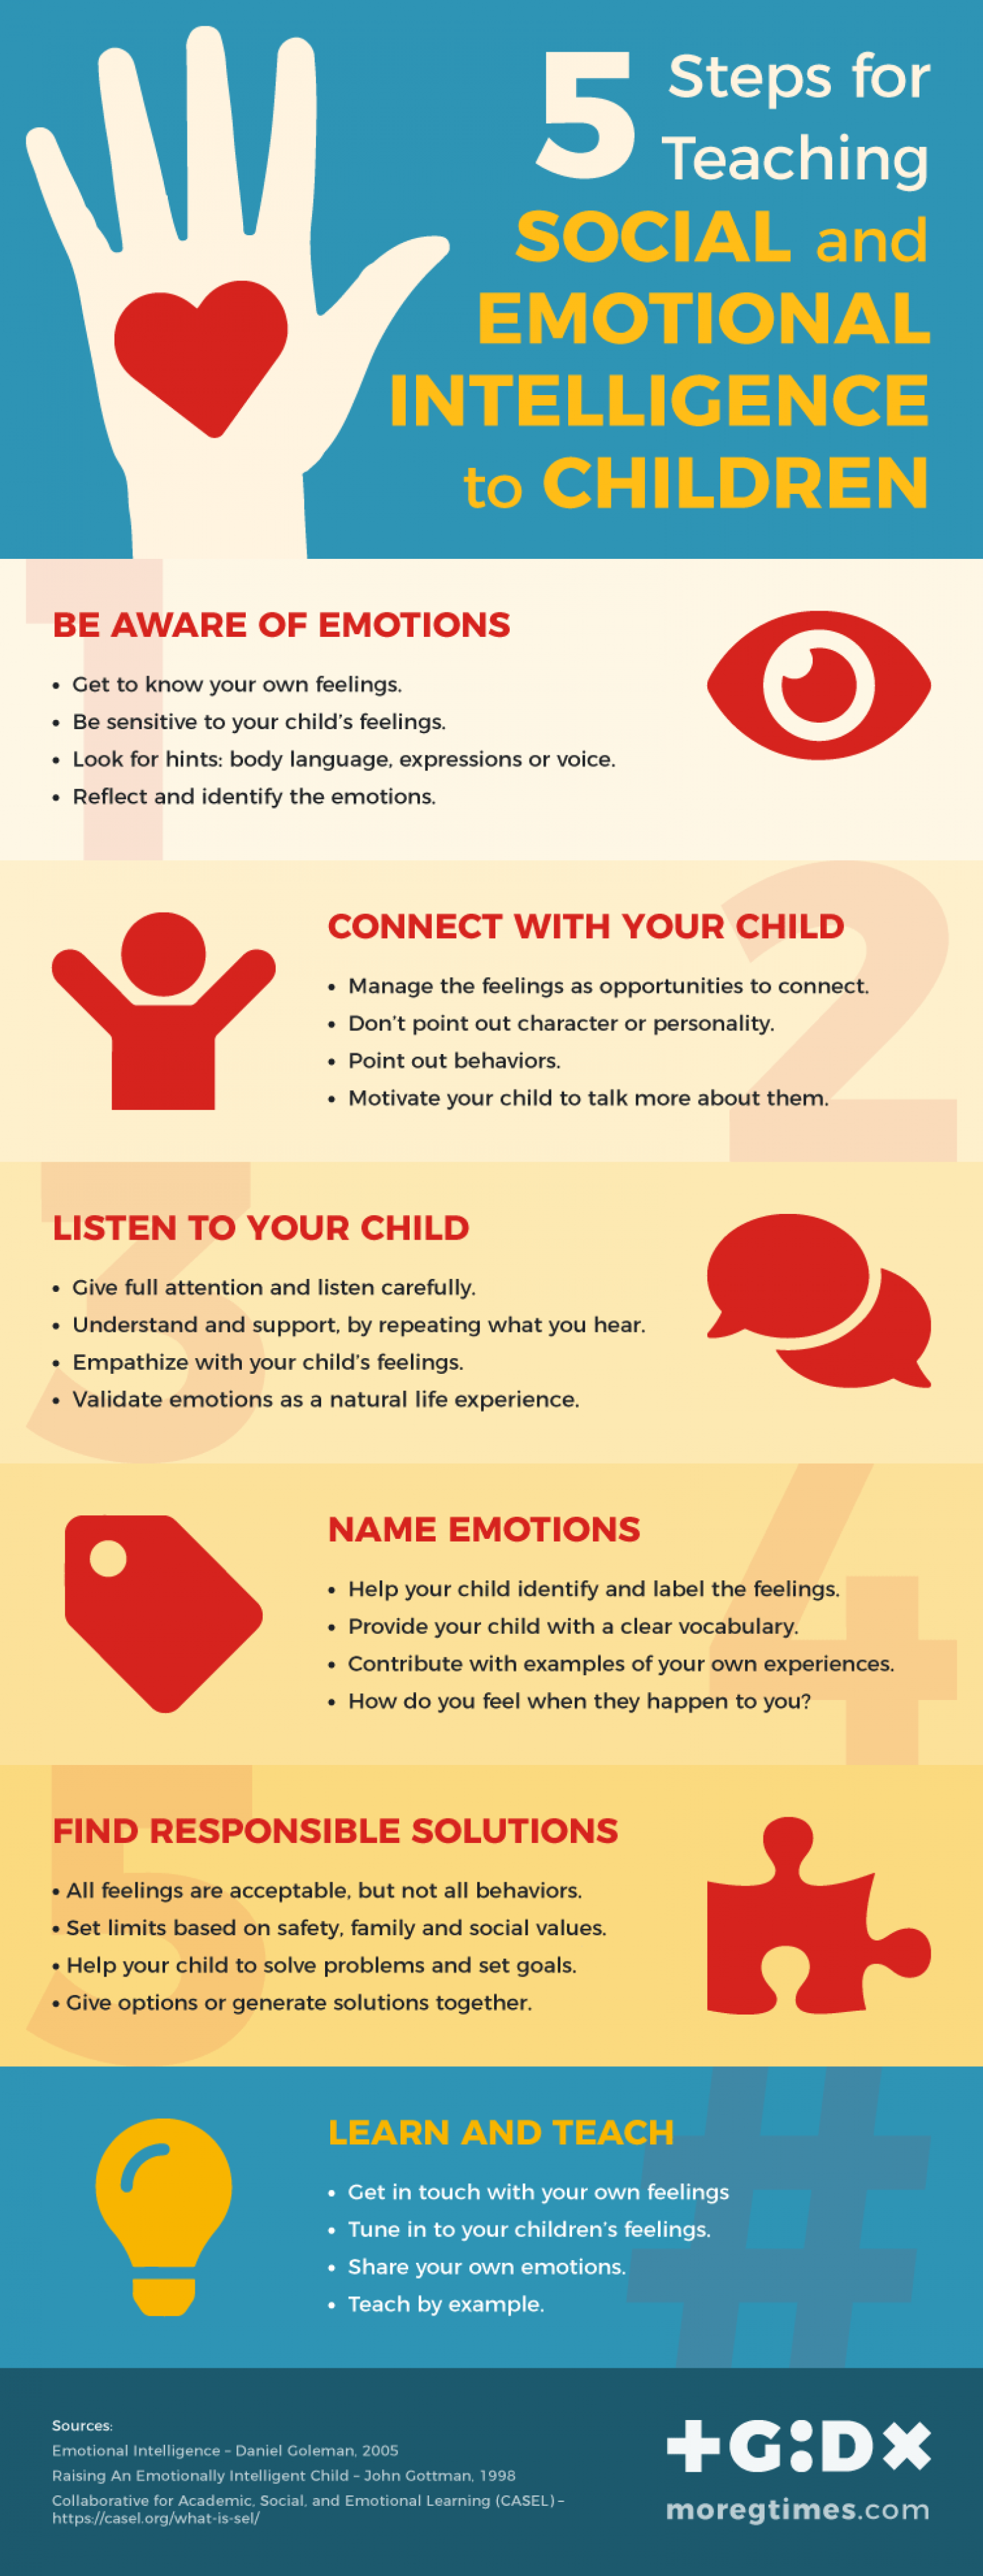 5 Steps for Teaching Social and Emotional Intelligence to Children Infographic